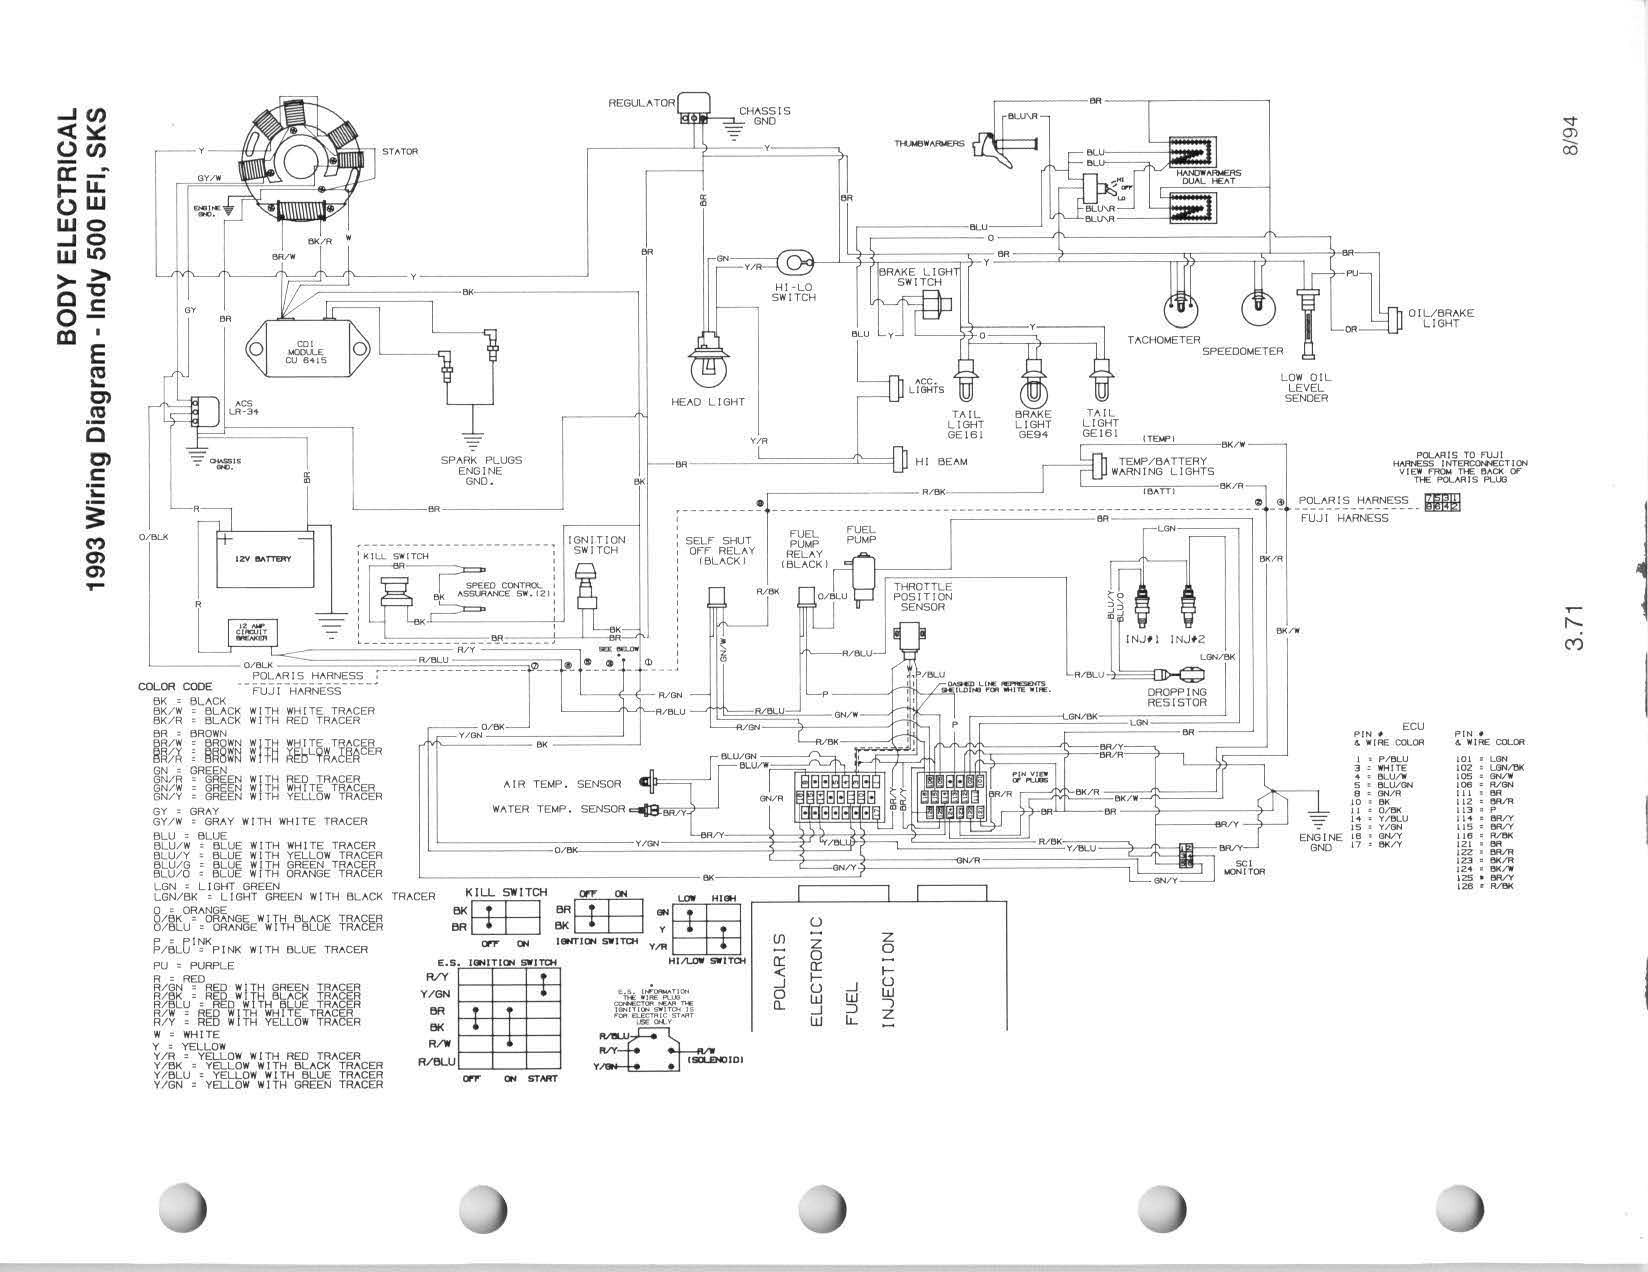 Snowmobile Engine Diagram 92 Indy Quits when Warm Of Snowmobile Engine Diagram